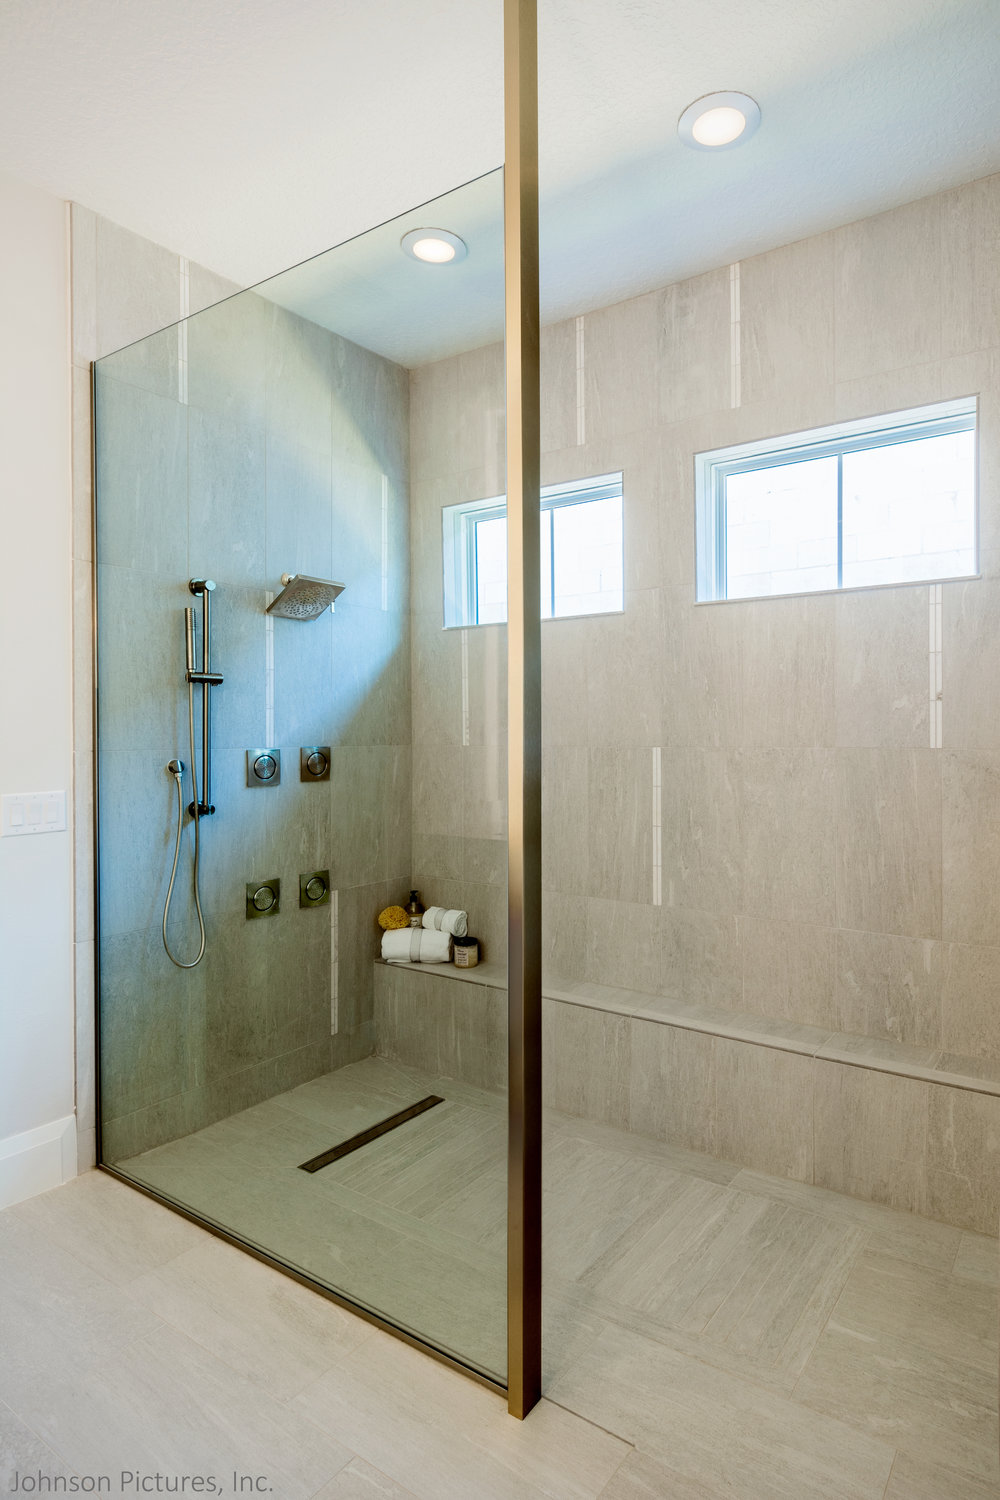 The Power of a Great Shower — Housing Design Matters